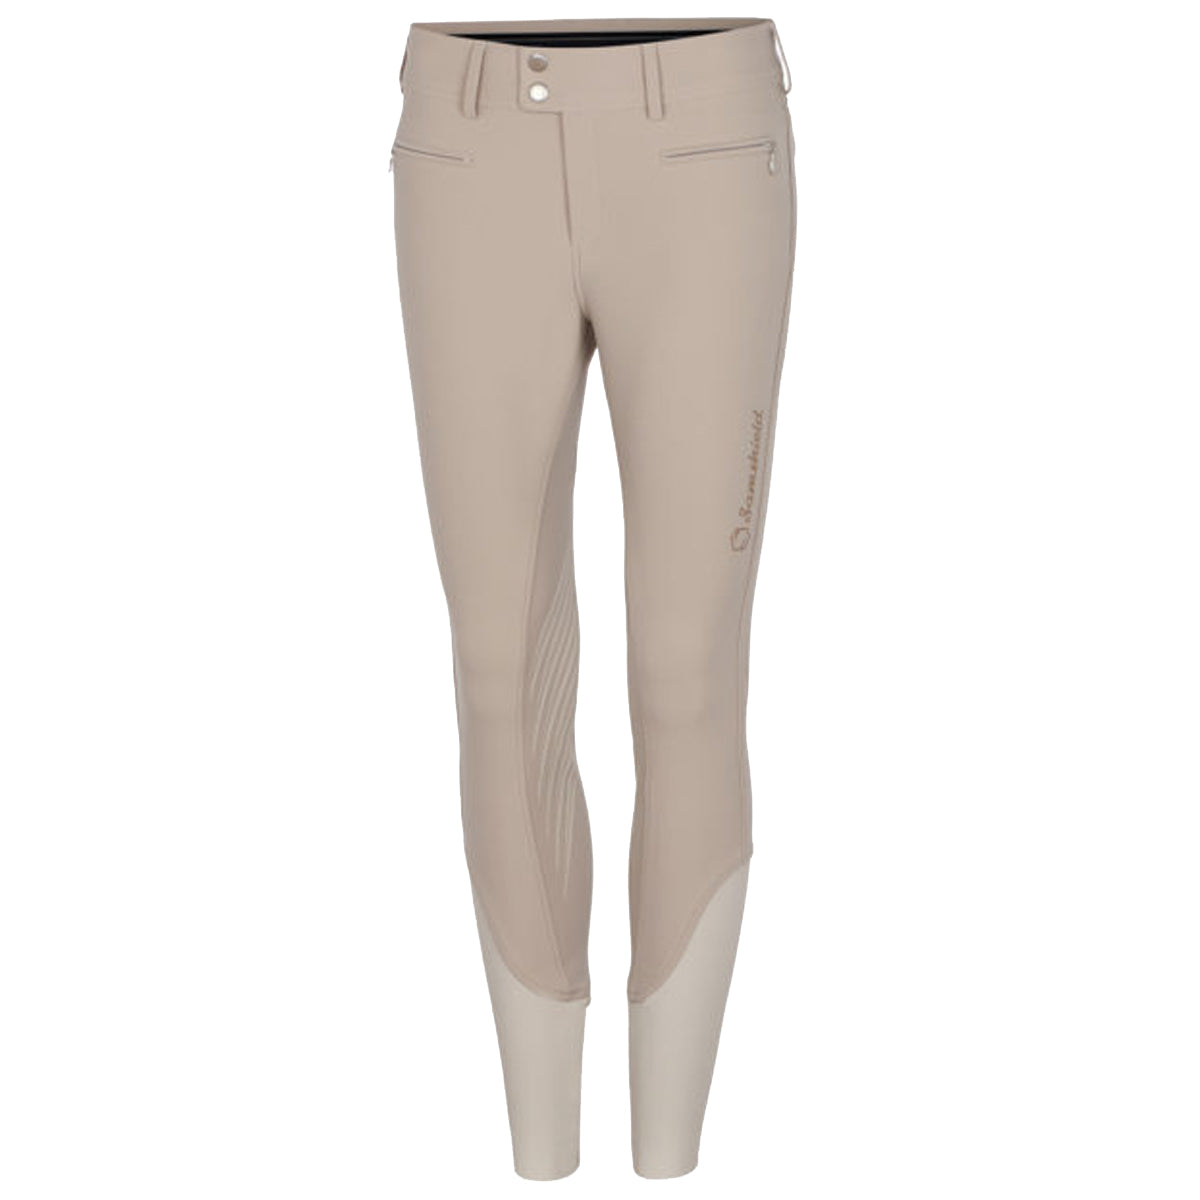 Samshield Women's Clotilde Breeches